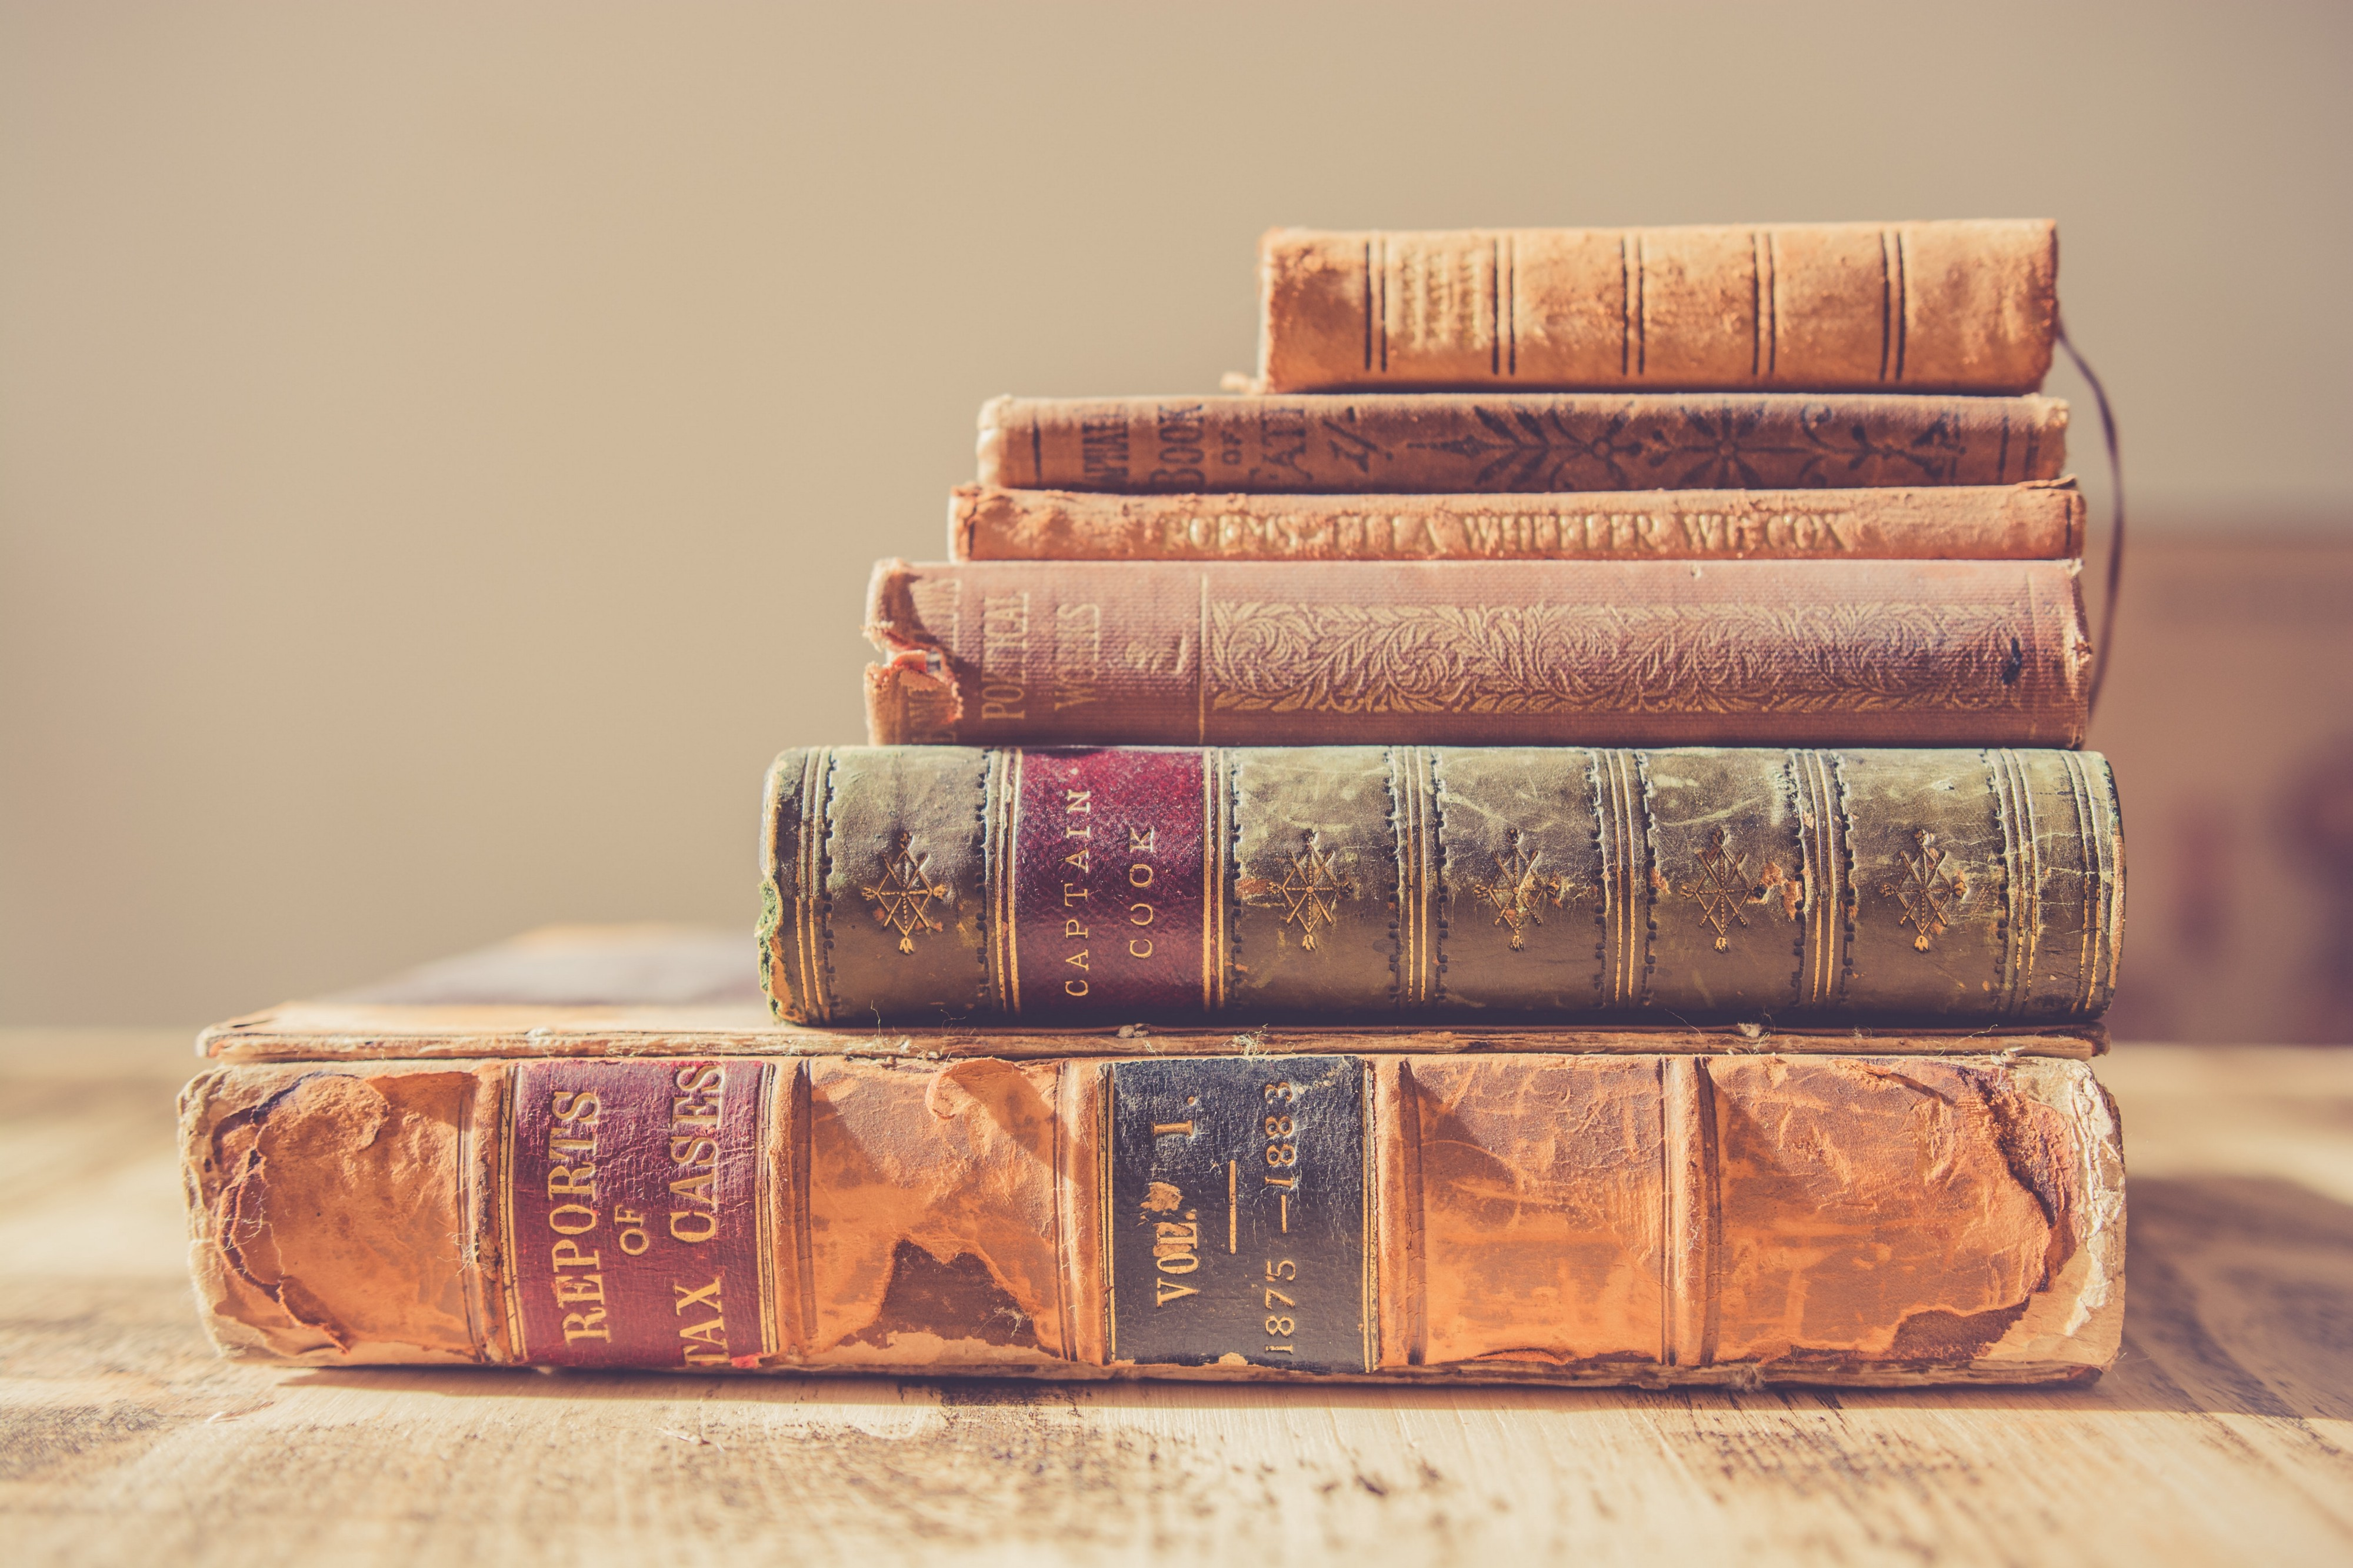 Five old books piled up top of one another